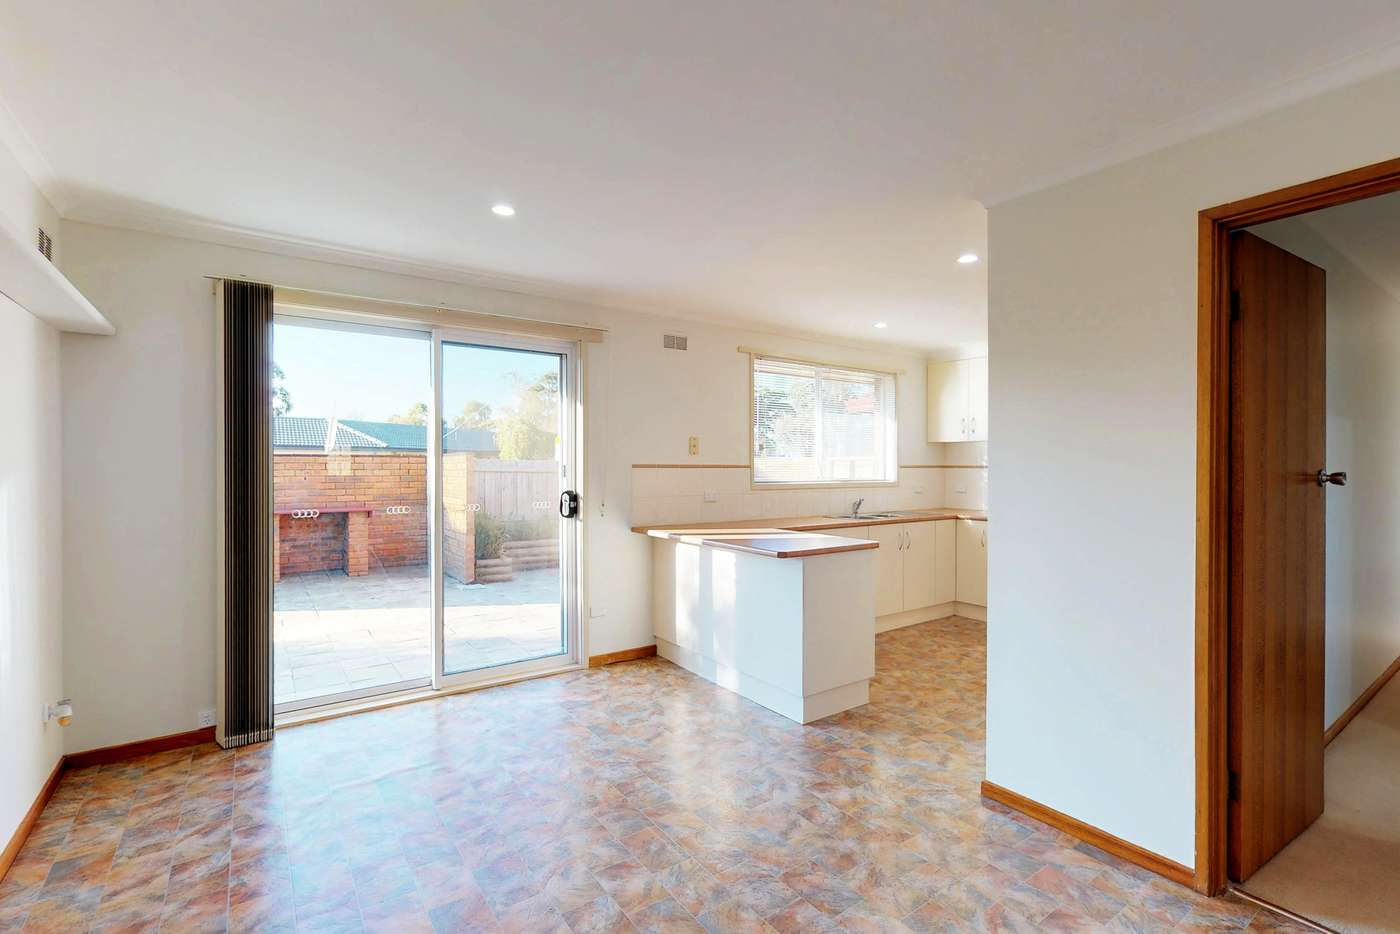 Sixth view of Homely house listing, 67 Grubb Avenue, Traralgon VIC 3844